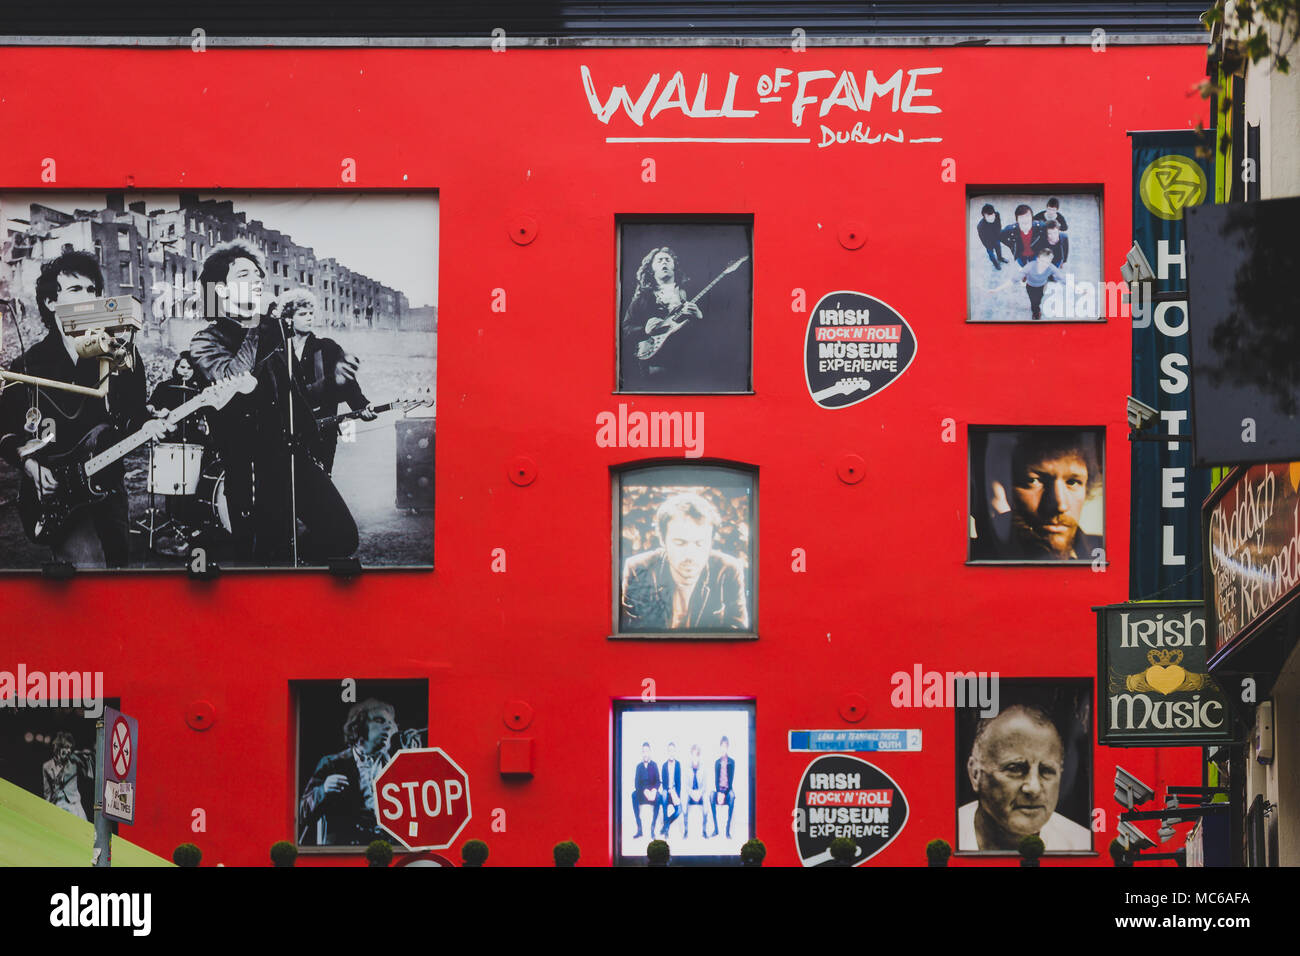 DUBLIN, IRELAND - April 12th, 2018: Wall of Fame in Dublin Temple Bar featuring images of the cit's most famous musicians and bands - Stock Image